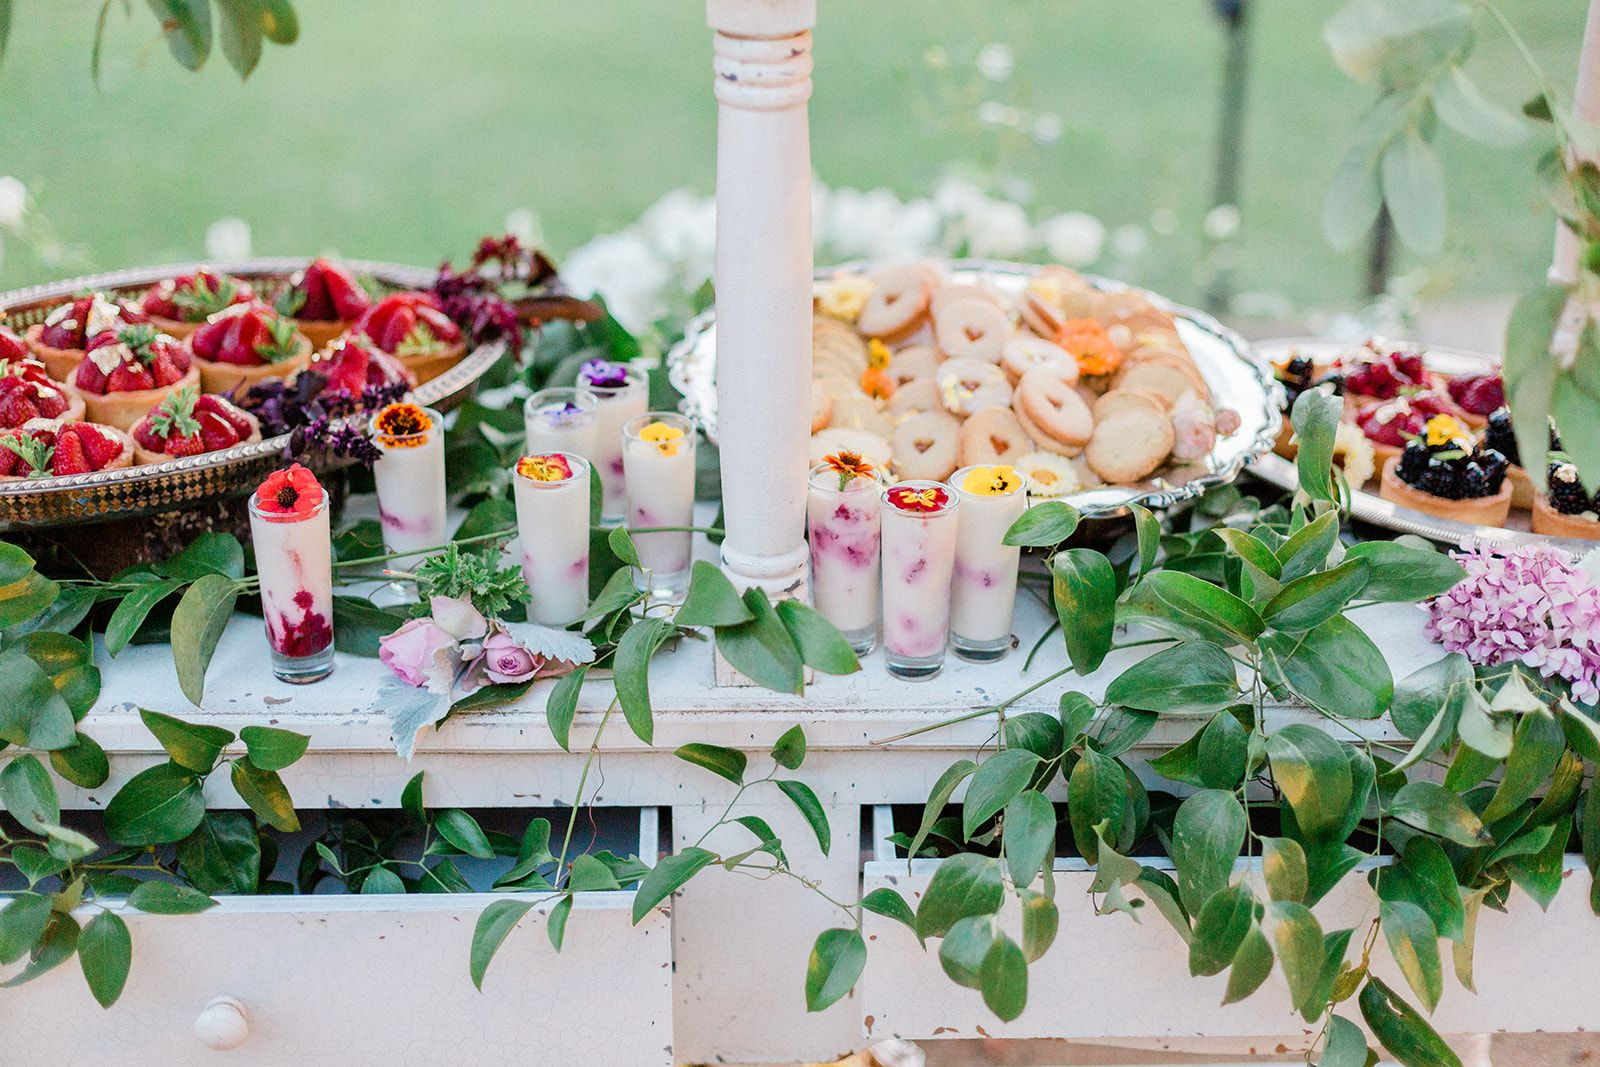 Beautiful desserts that serve as awesome wedding